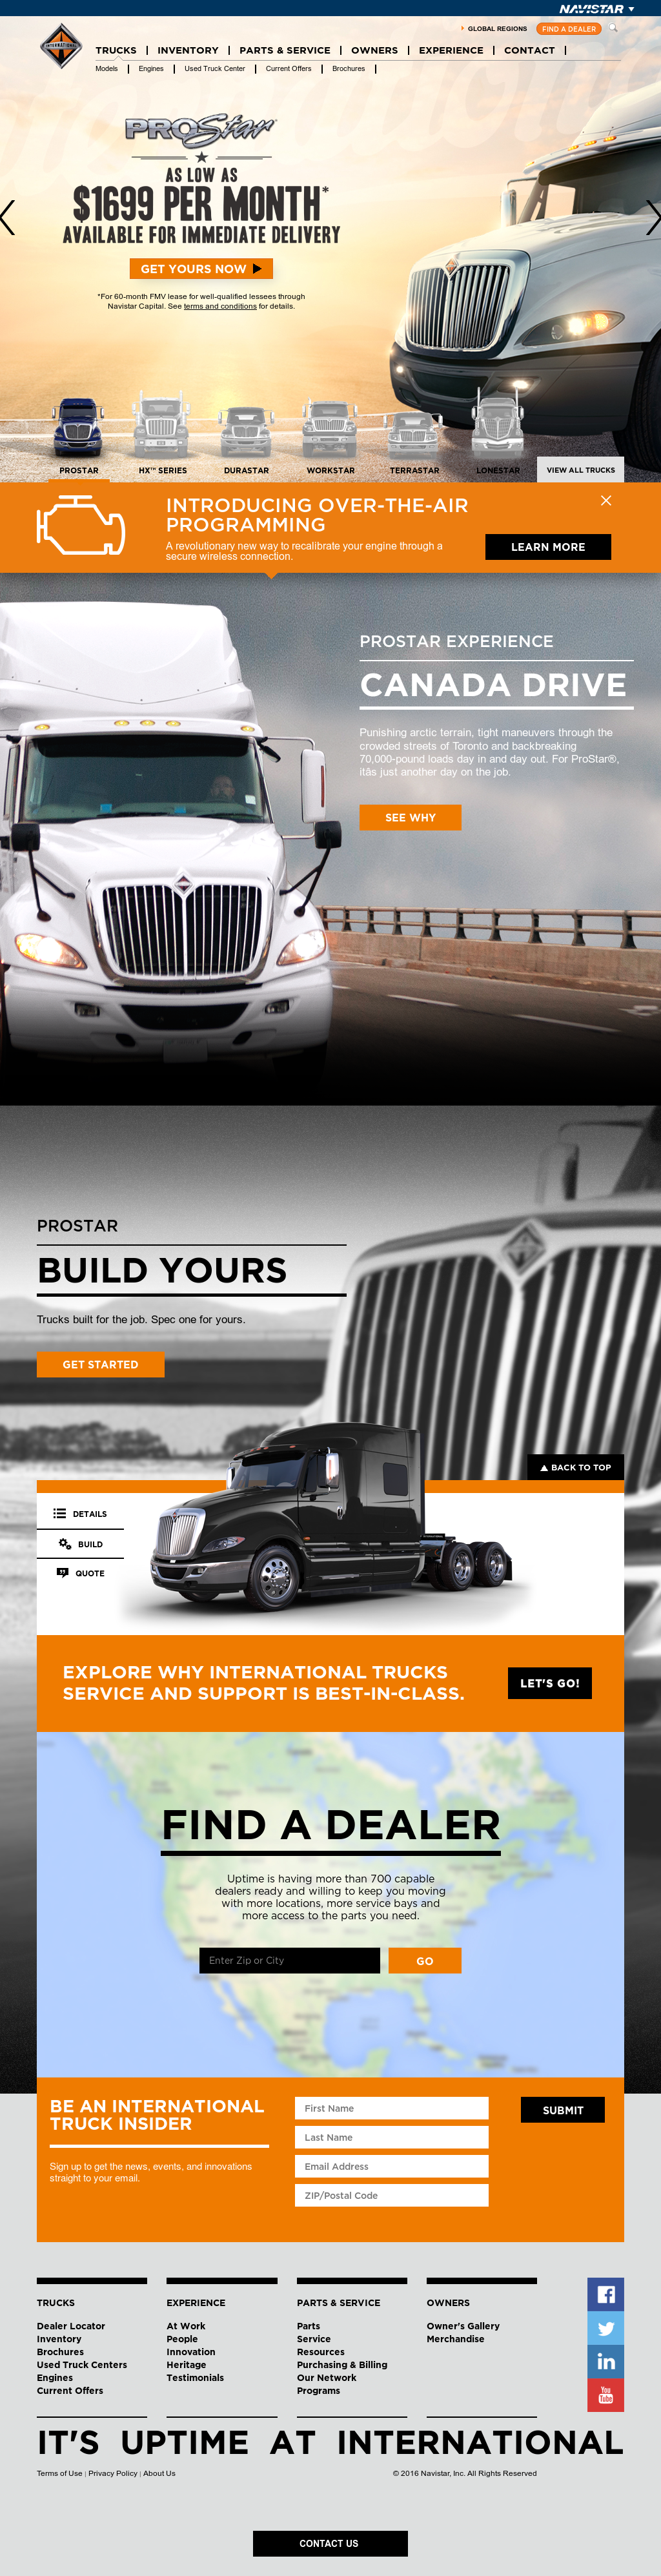 International Trucks Competitors, Revenue and Employees - Owler